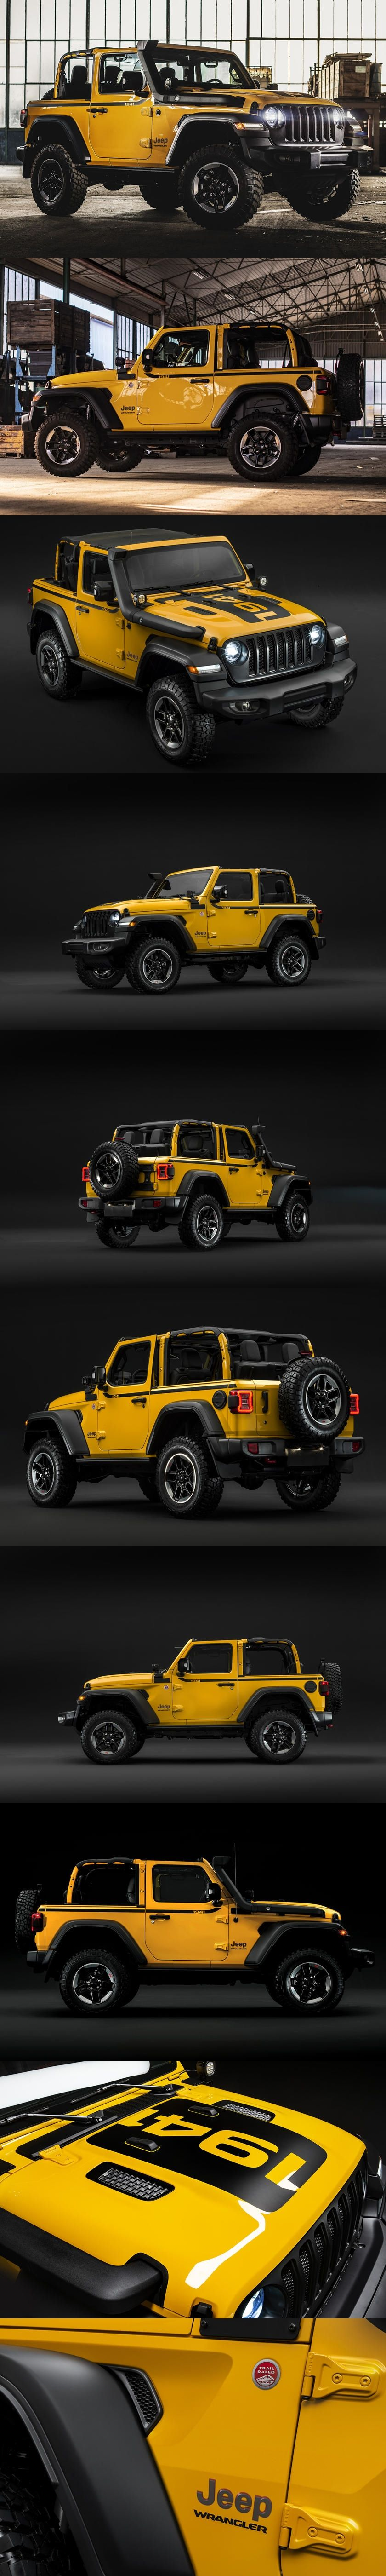 Jeep Wrangler Rubicon 1941 Storms Europe Once Again The Special